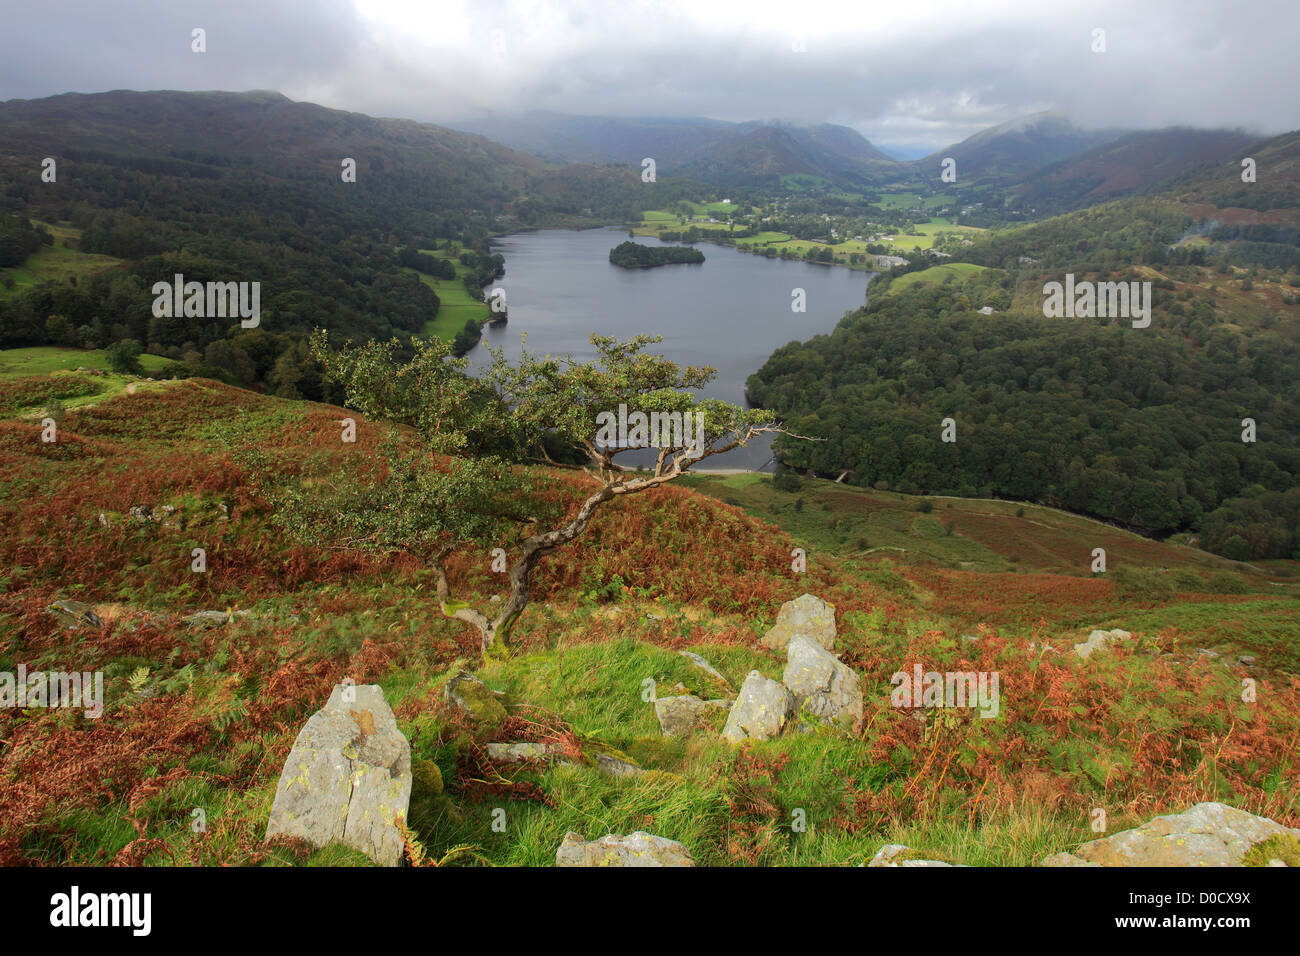 Landscape view over Grasmere water from Loughrigg Terraces, Lake District National Park, Cumbria, England, UK - Stock Image